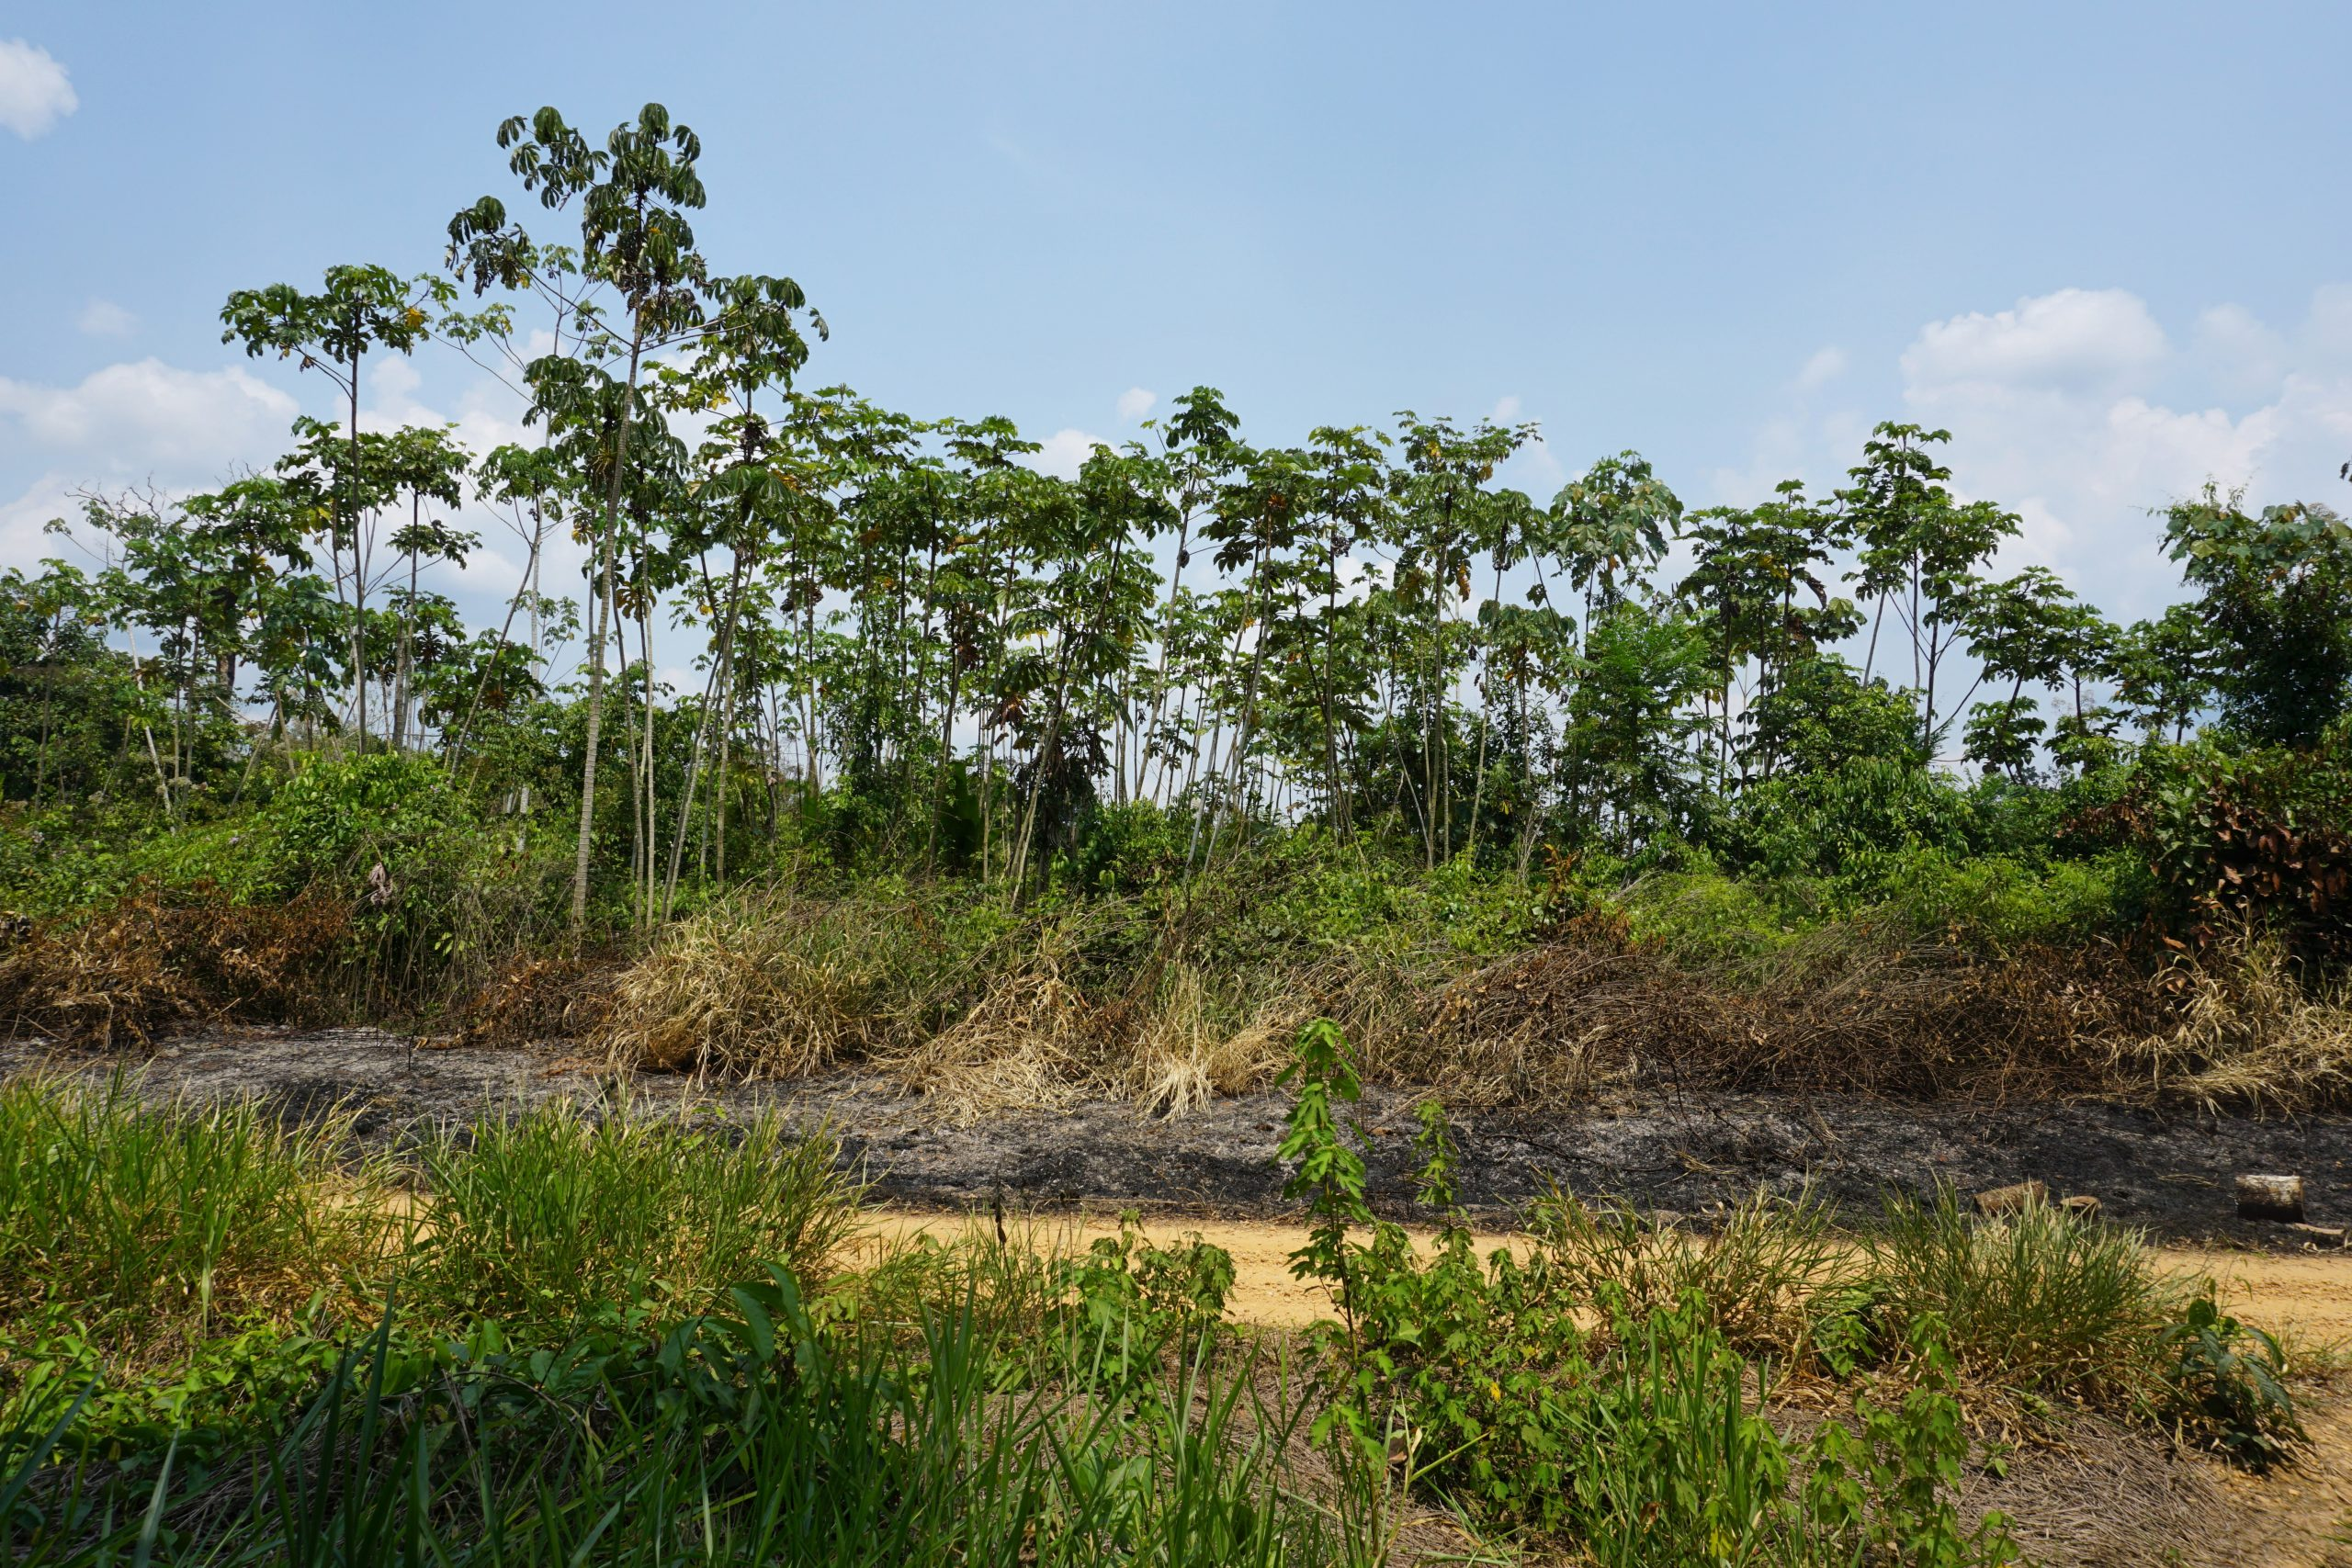 Deforested area close to Alegria, Madre de Dios.